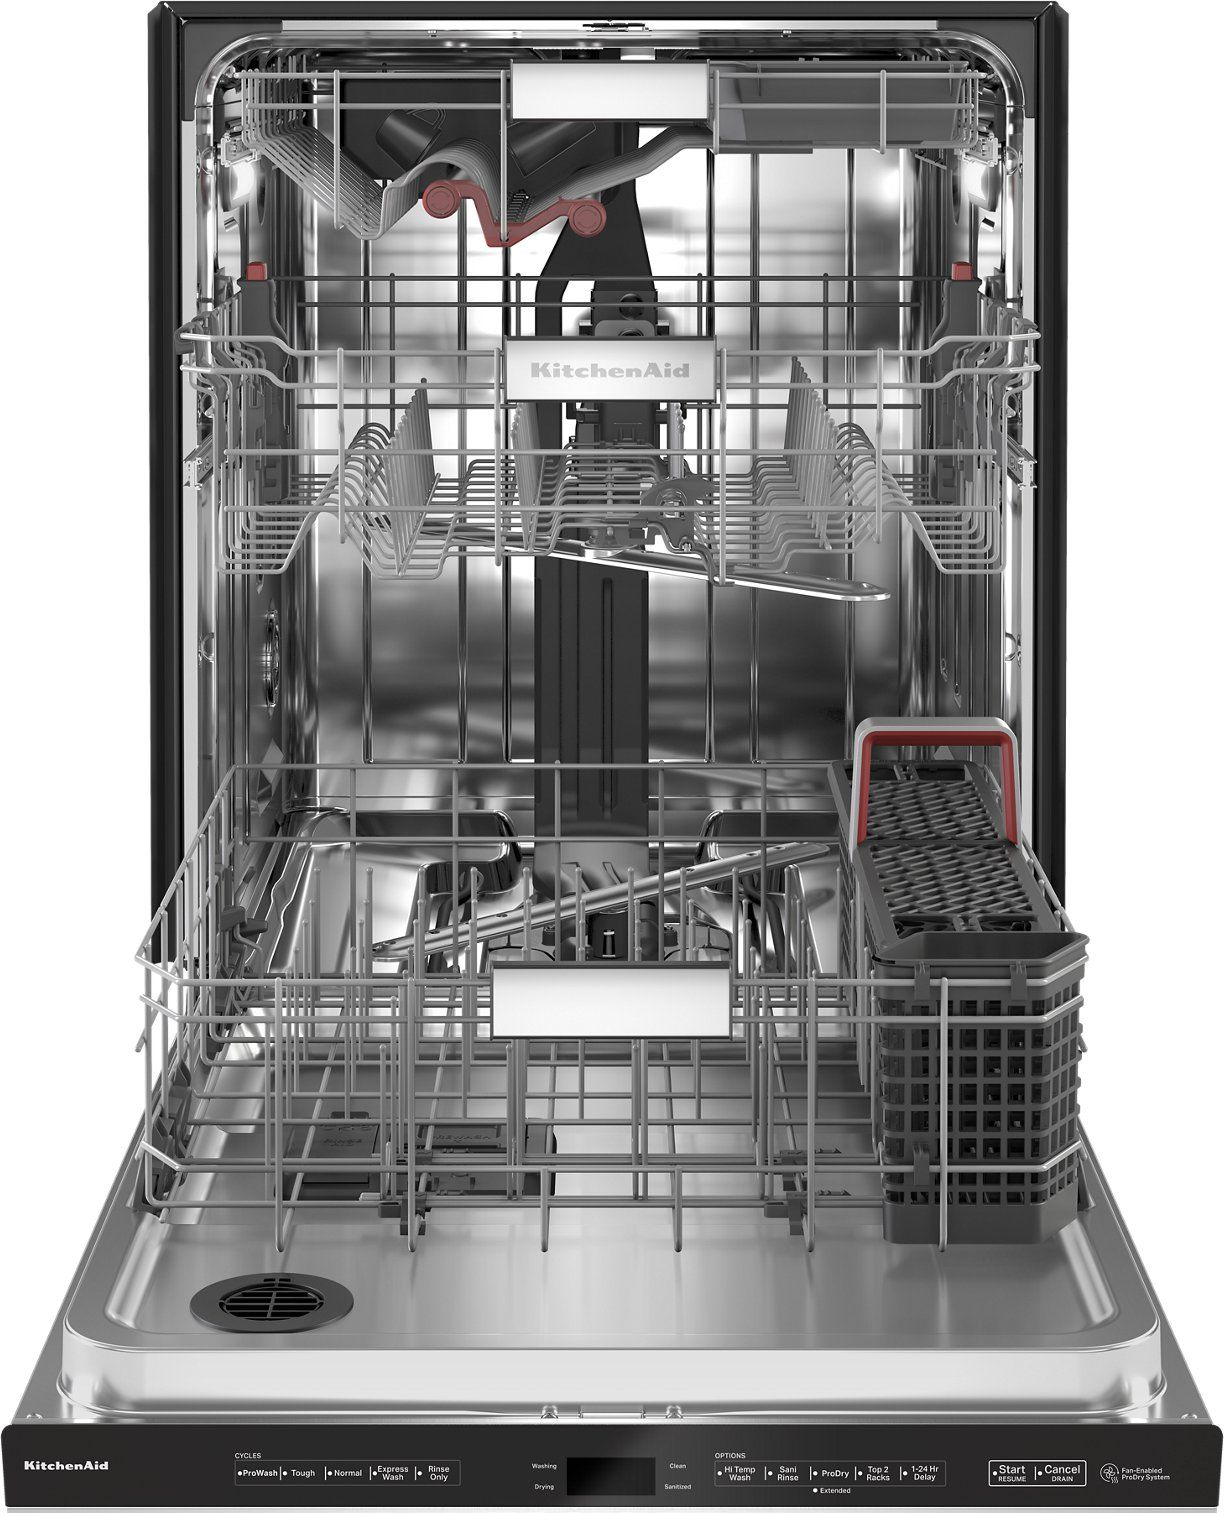 Kitchenaid 24 Inch Dishwasher With Top Controls And Led Lighting Stainless Steel In 2020 Built In Dishwasher Stainless Steel Dishwasher Black Dishwasher